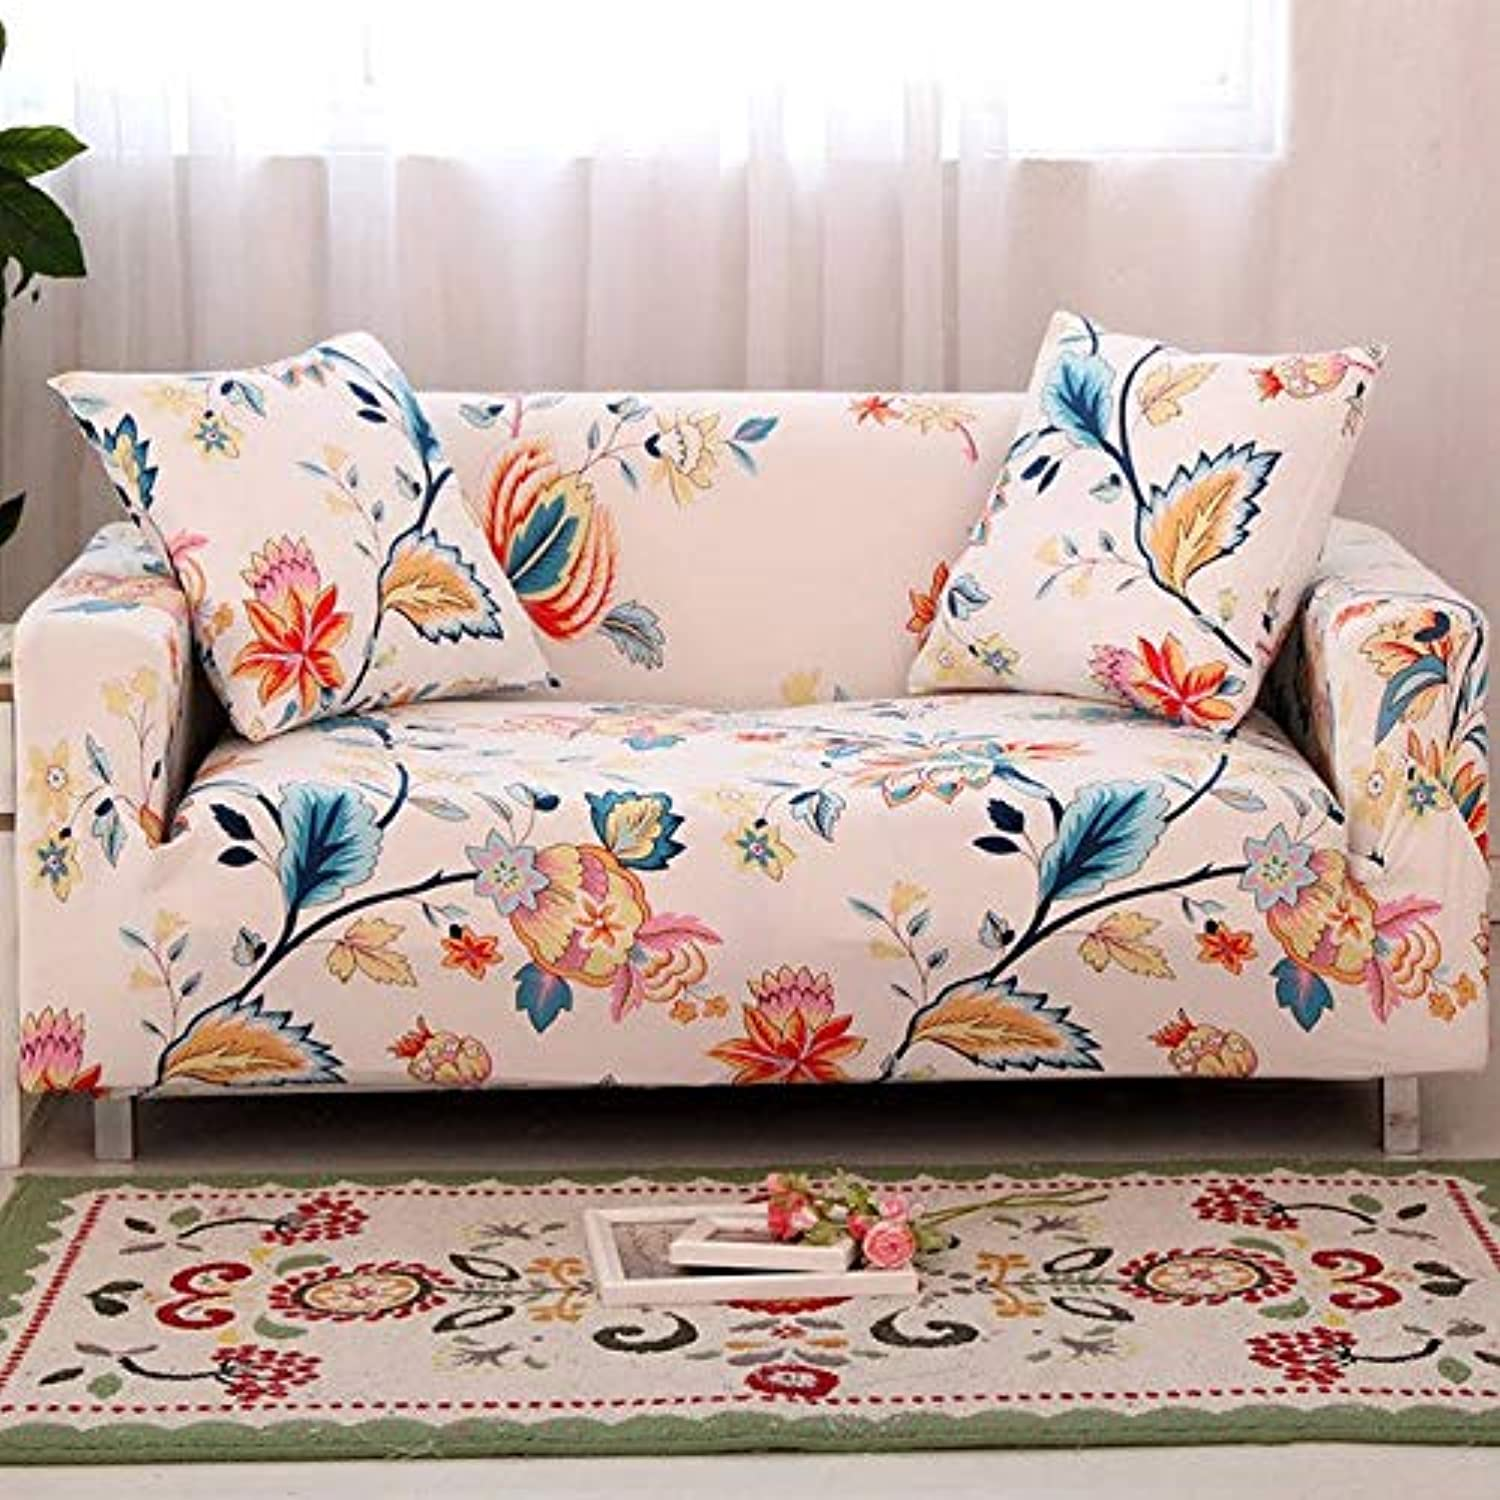 Floral Printing Stretch Elastic Sofa Cover Cotton Sofa Towel Slip-Resistant Sofa Covers for Living Room   colour9, Two-Seater